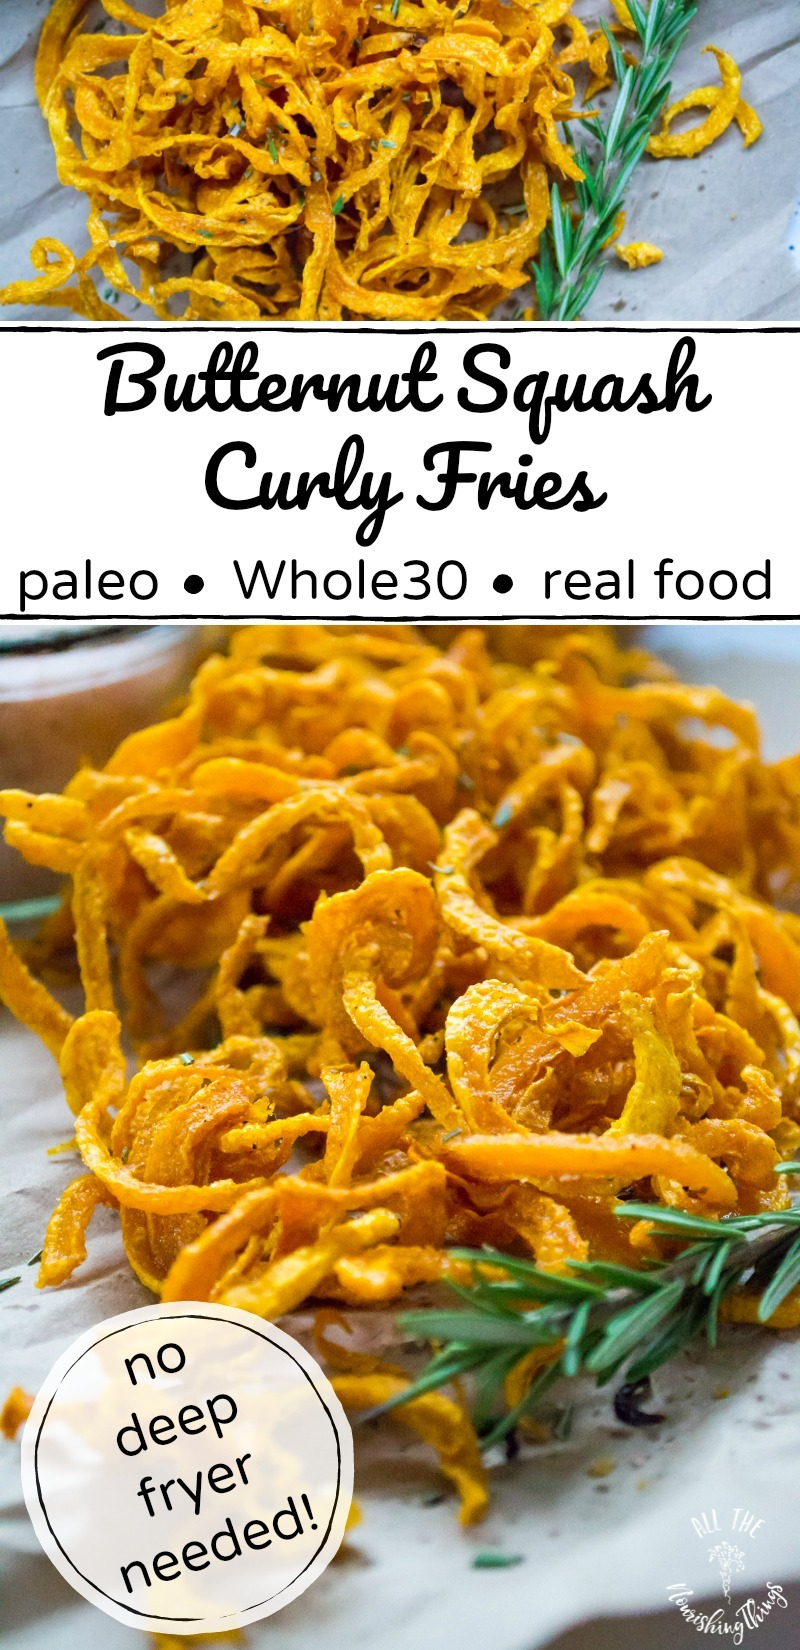 long pin of paleo butternut squash curly fries with black text overlay